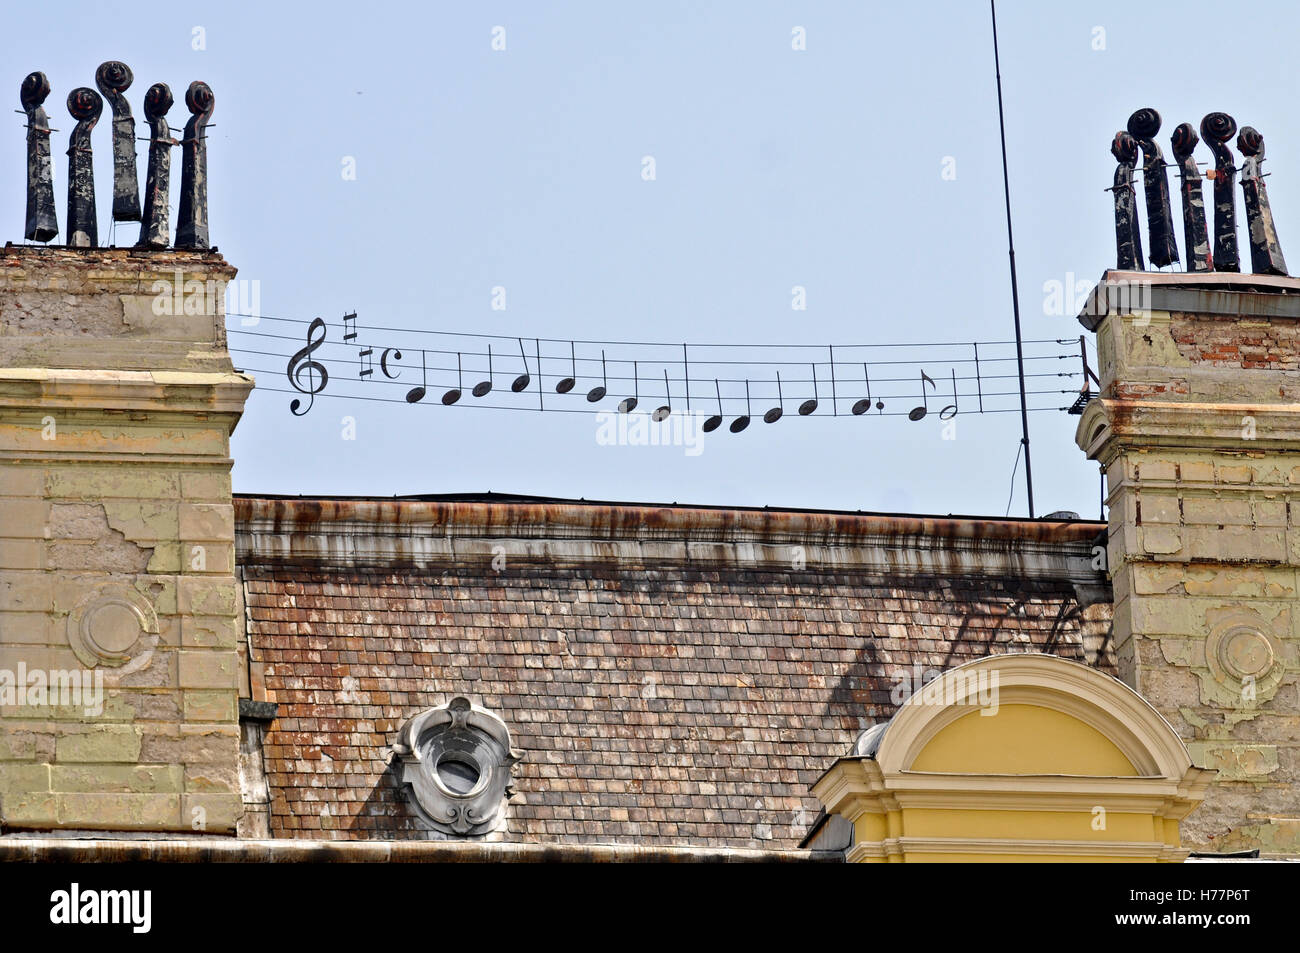 Rooftop with music pentagram decoration on top. - Stock Image